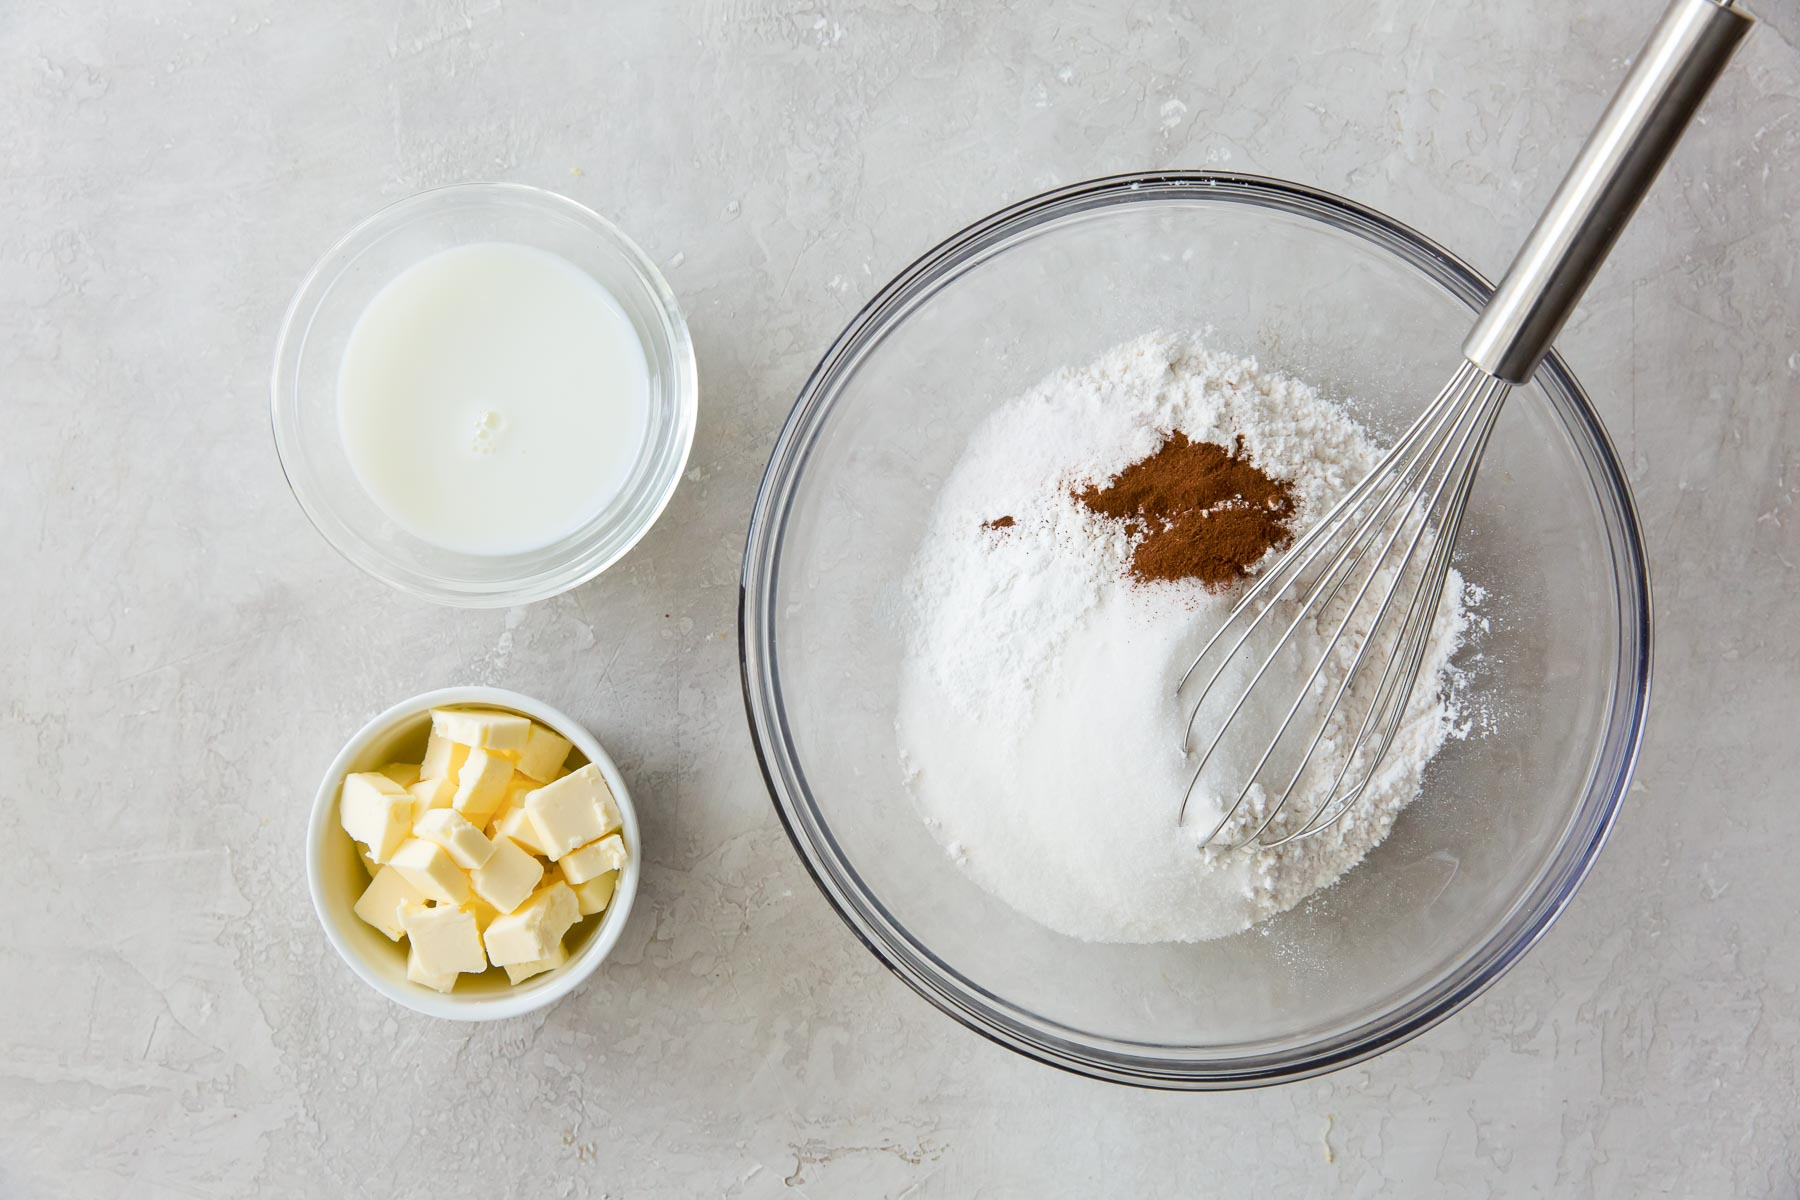 ingredients for peach cobbler topping in mixing bowl with a whisk